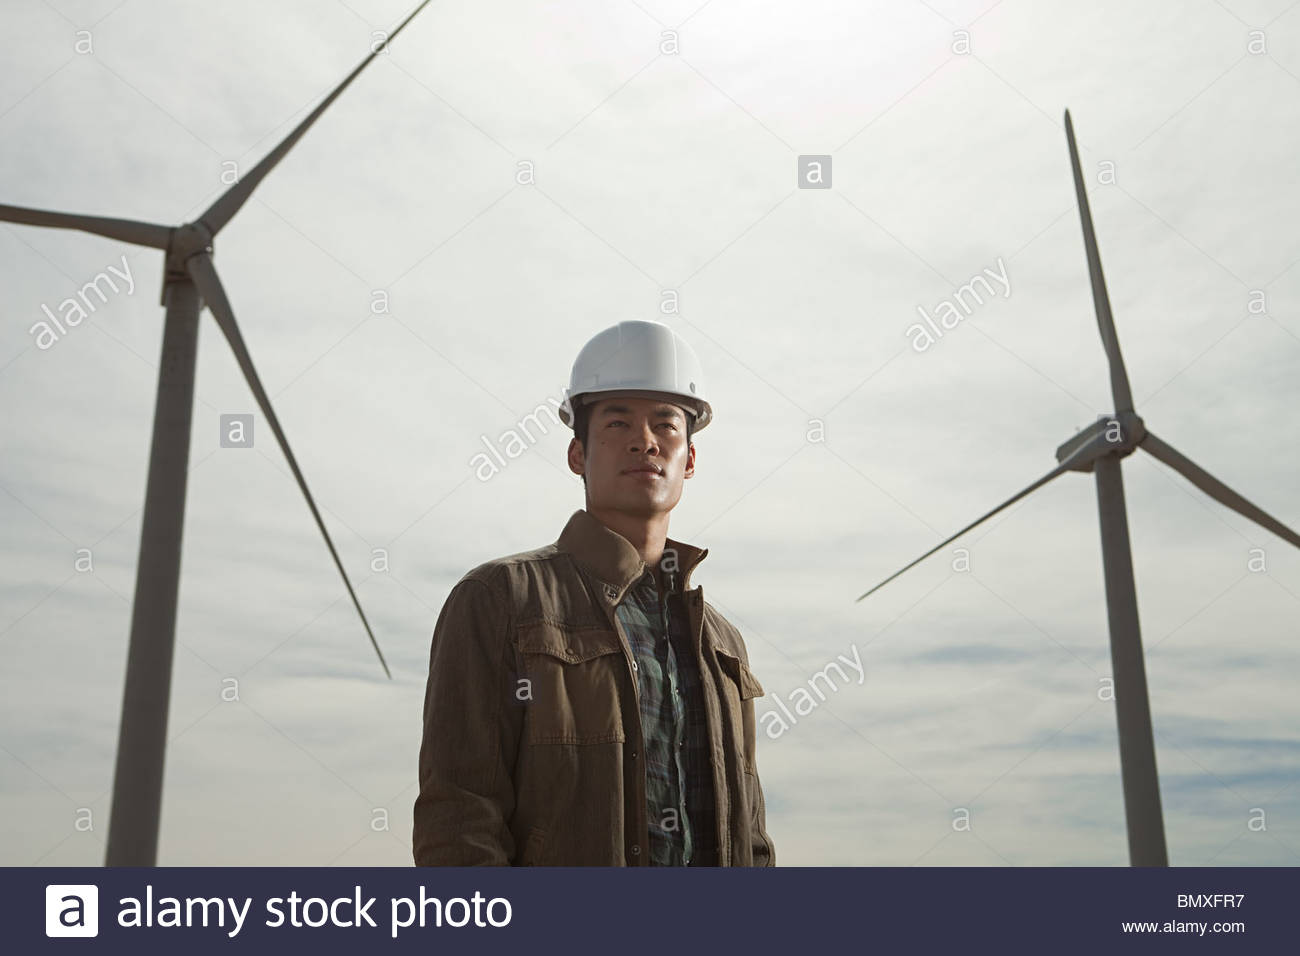 Engineer at a wind farm - Stock Image